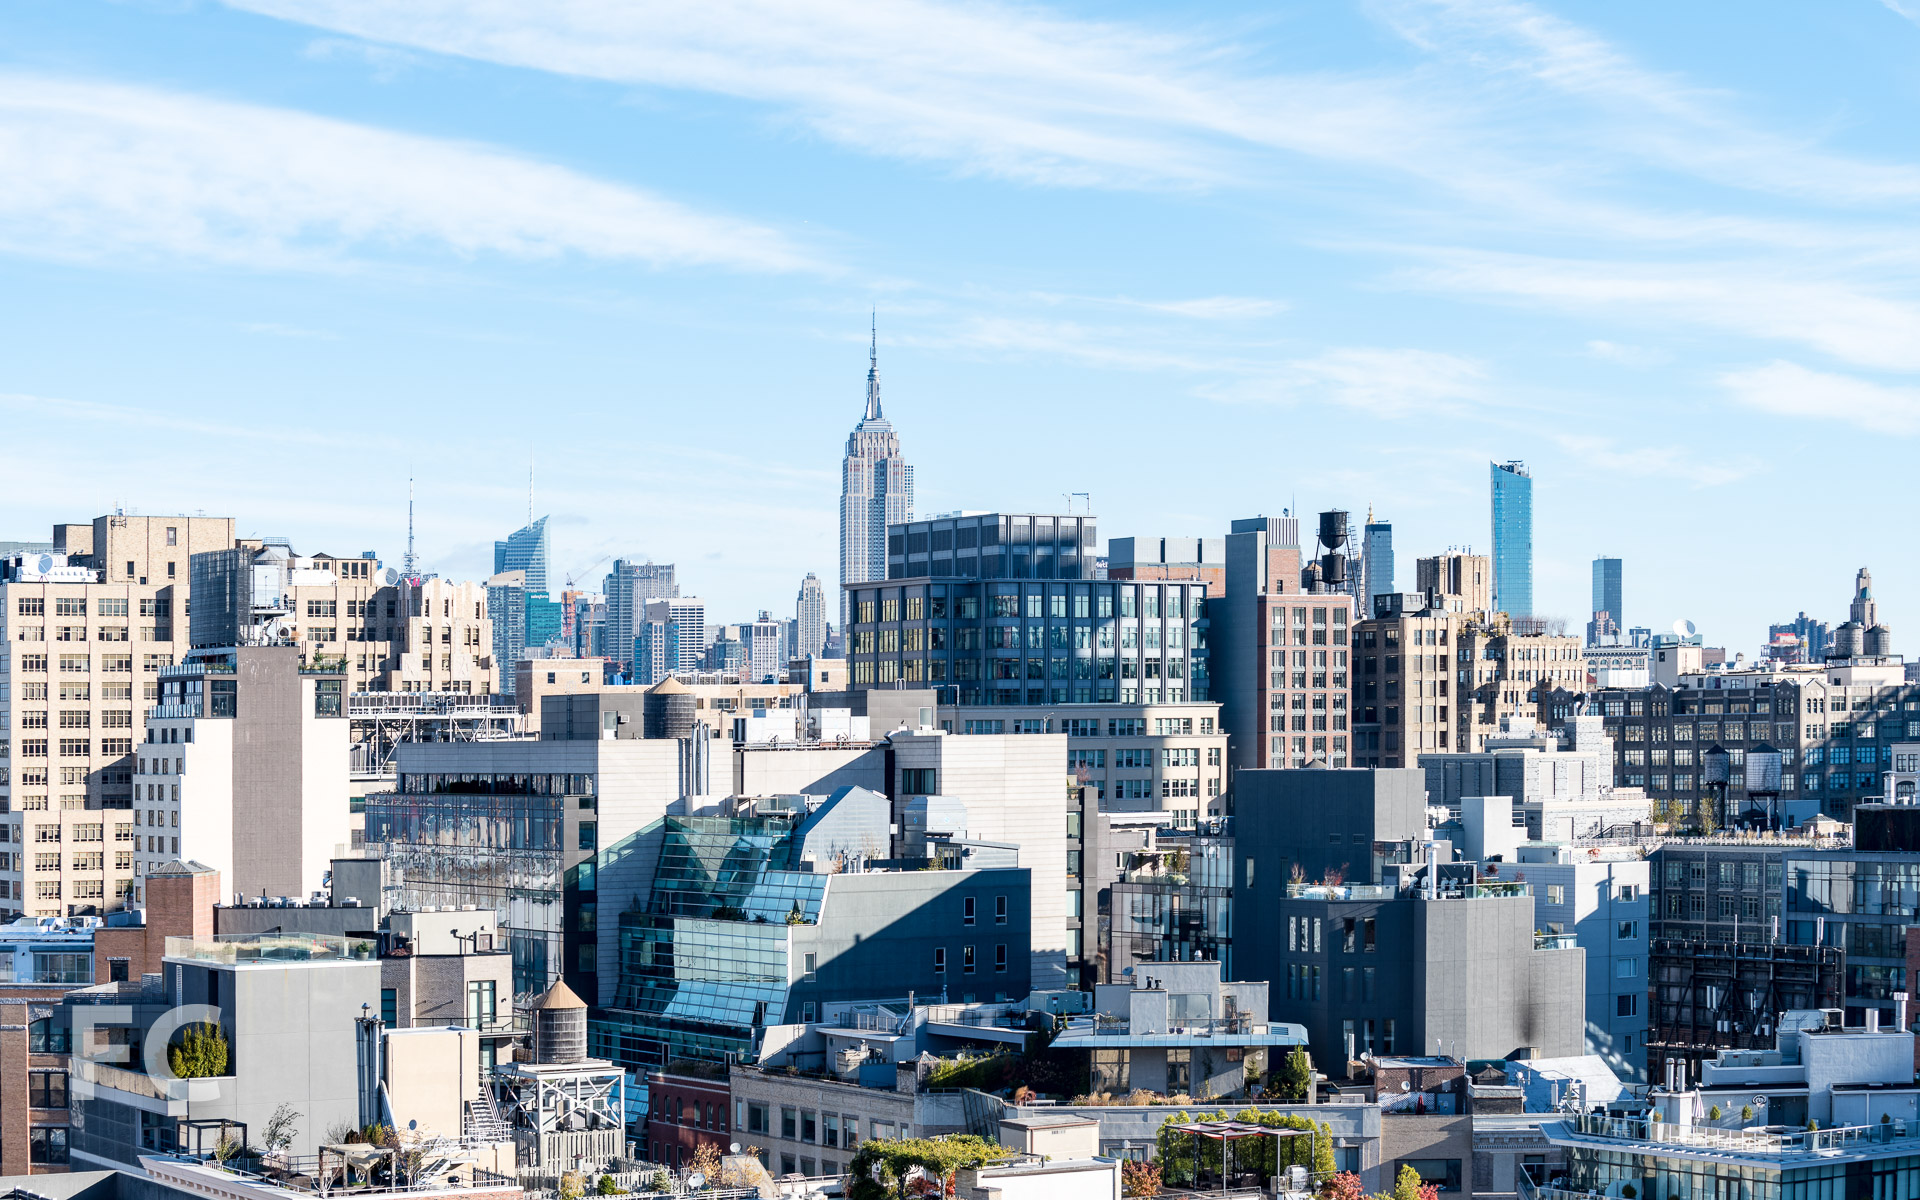 View northeast from the rooftop terrace towards SoHo and Midtown.